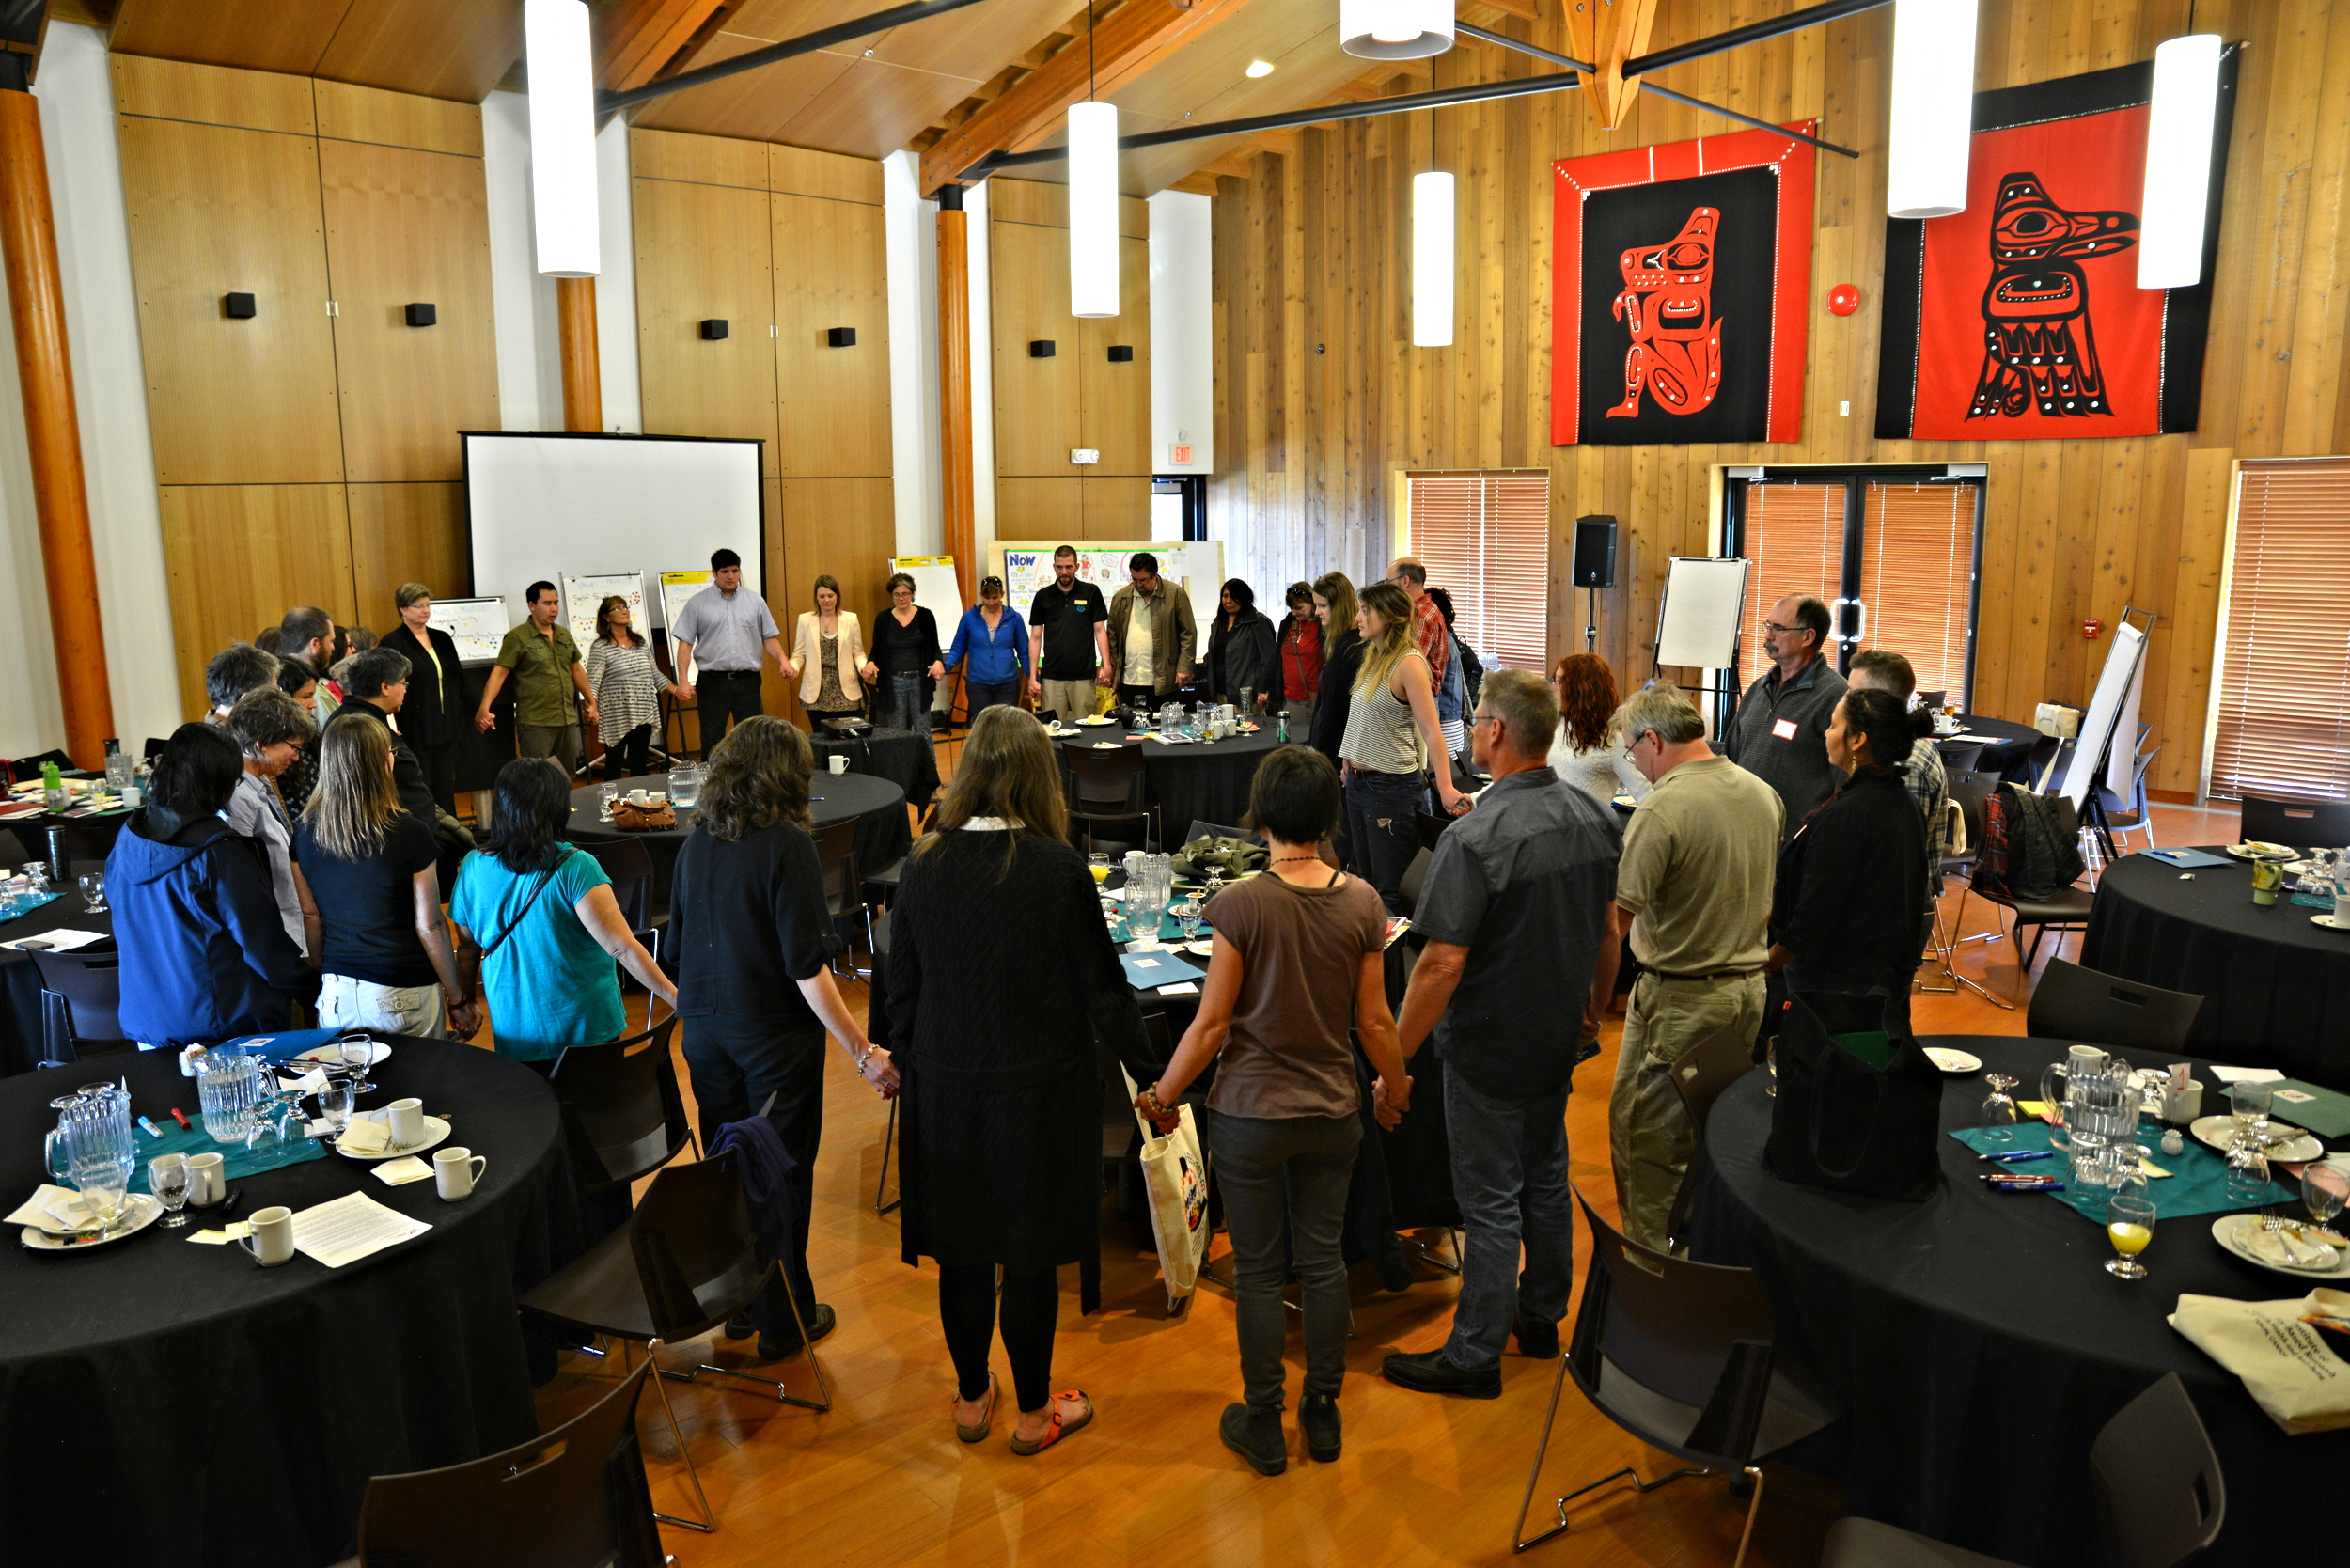 Kwanlin Dün First Nation Councillor Sean Smith leads a powerful Closing Ceremony at the Yukon Food Security Roundtable, May 19th, 2016.